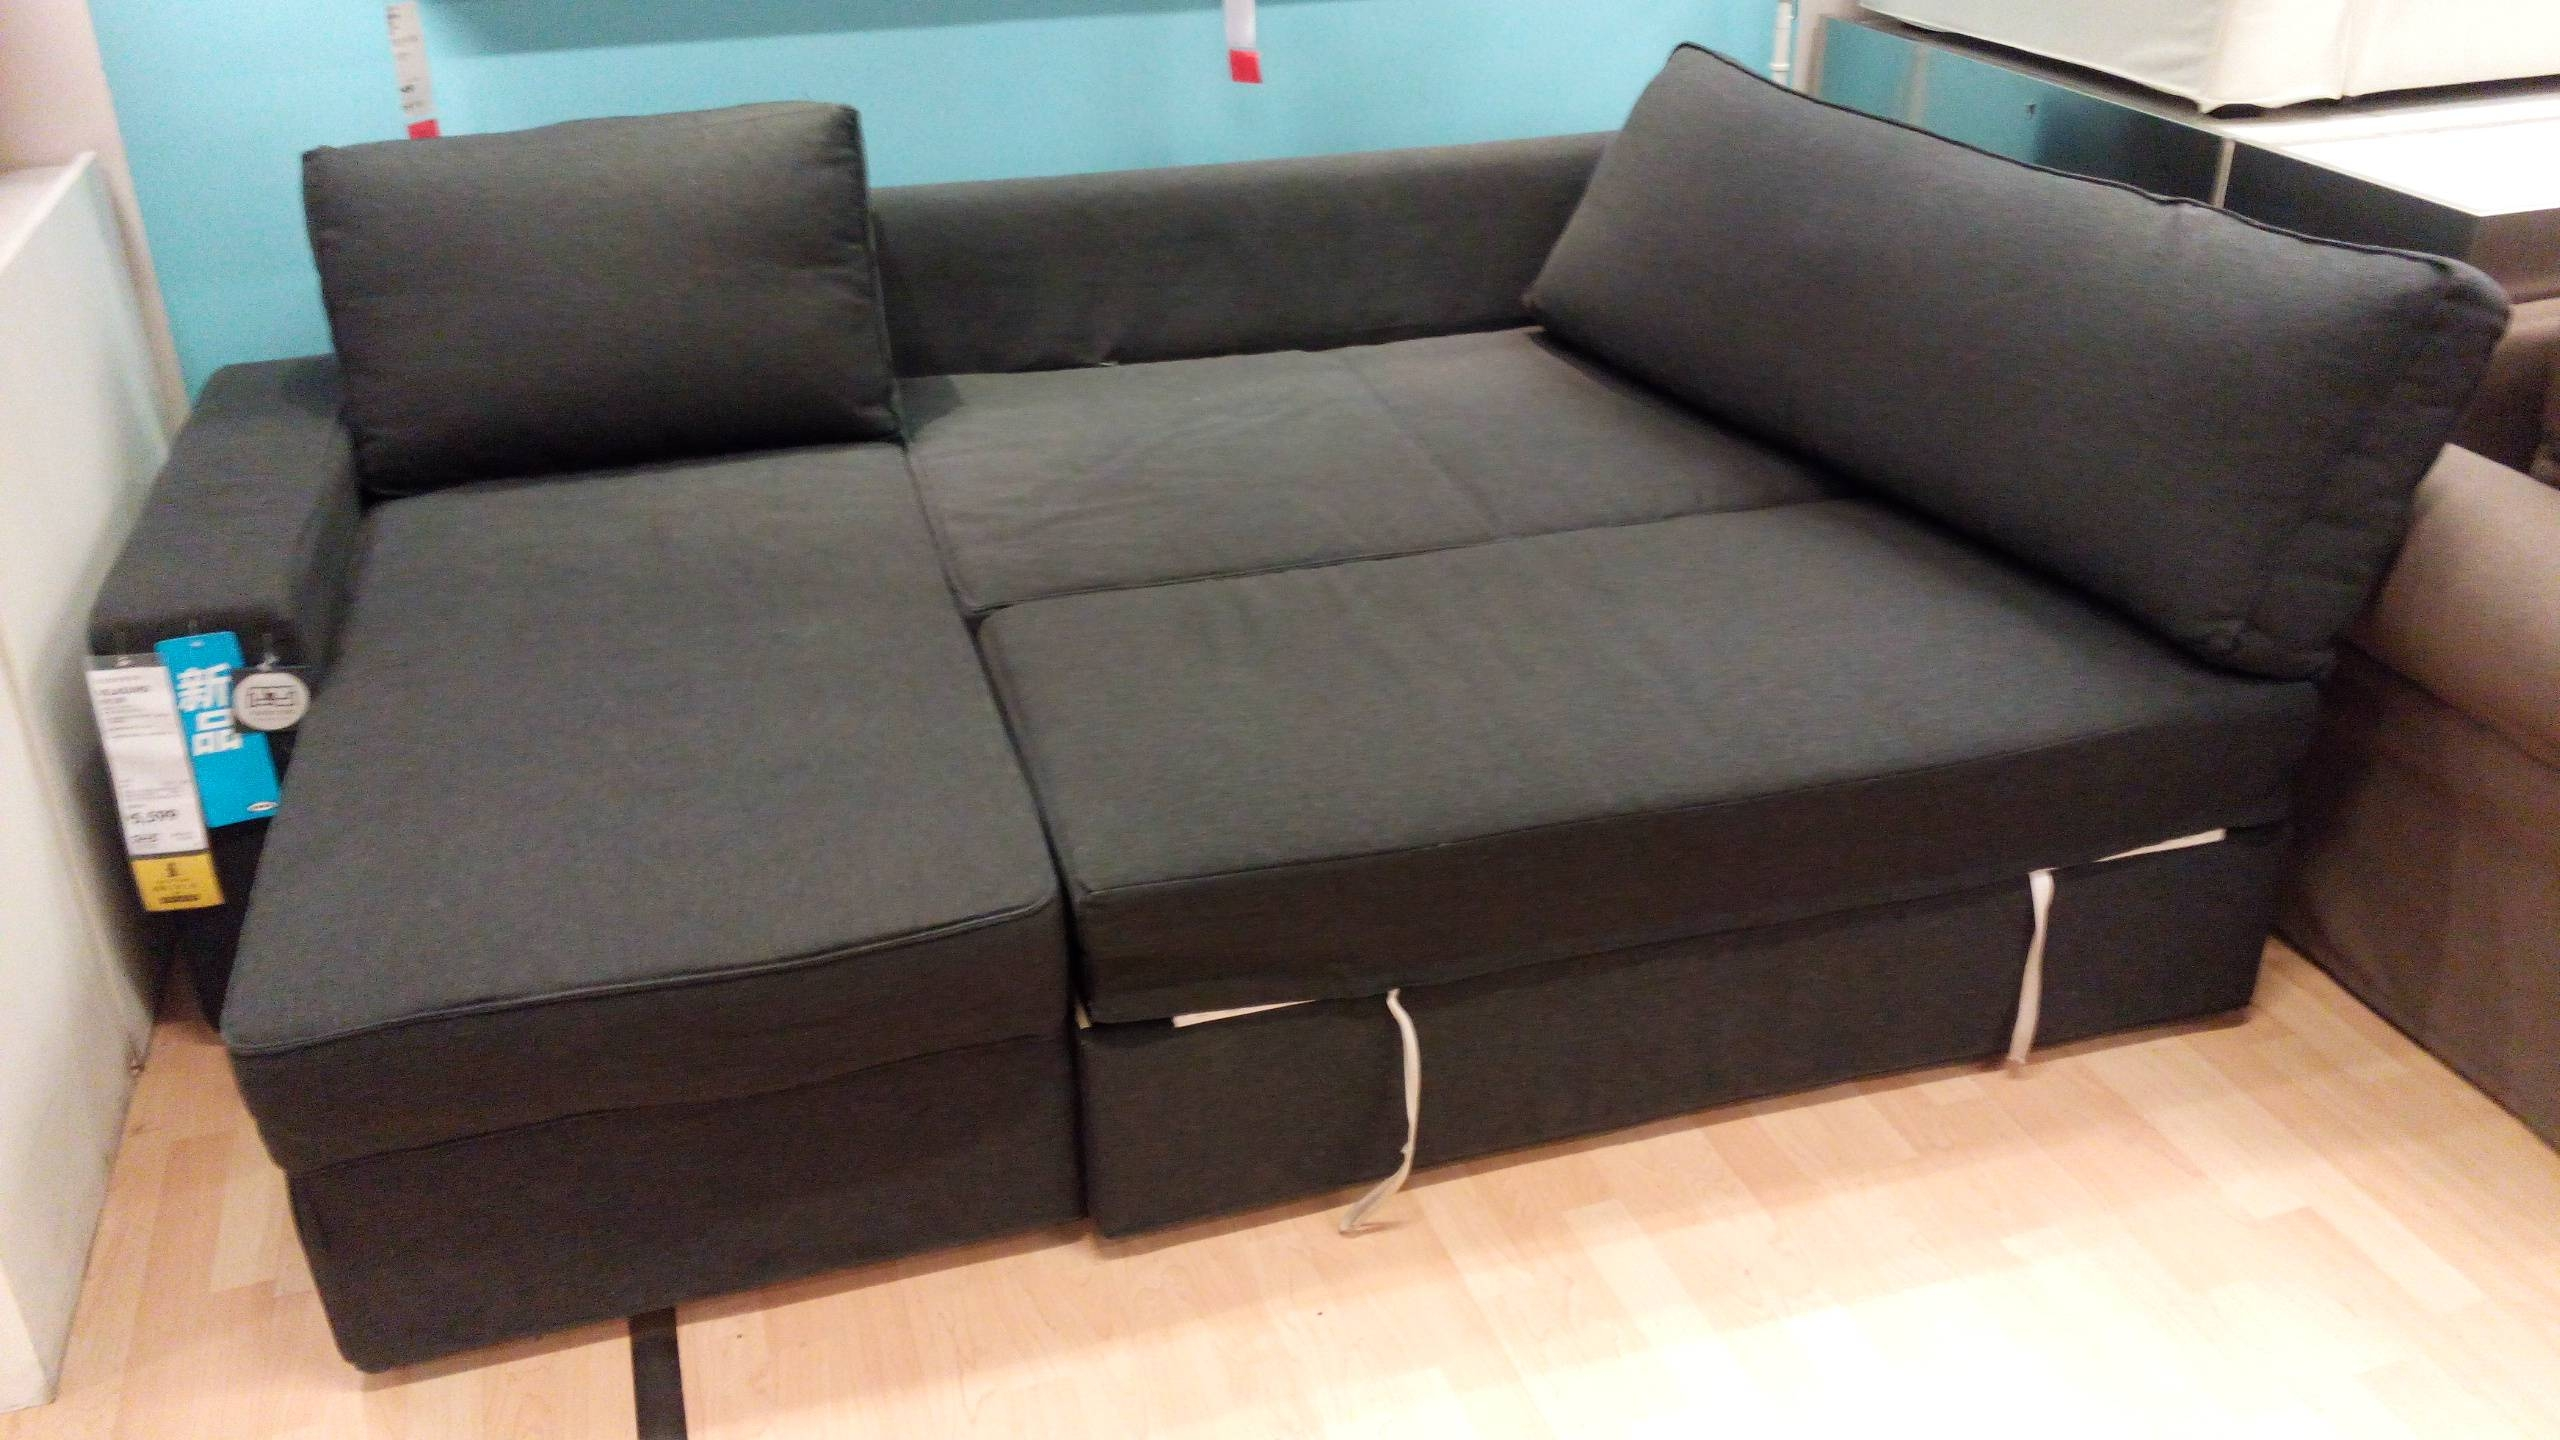 Ikea Vilasund And Backabro Review - Return Of The Sofa Bed Clones! pertaining to Ikea Chaise Lounge Sofa (Image 17 of 30)